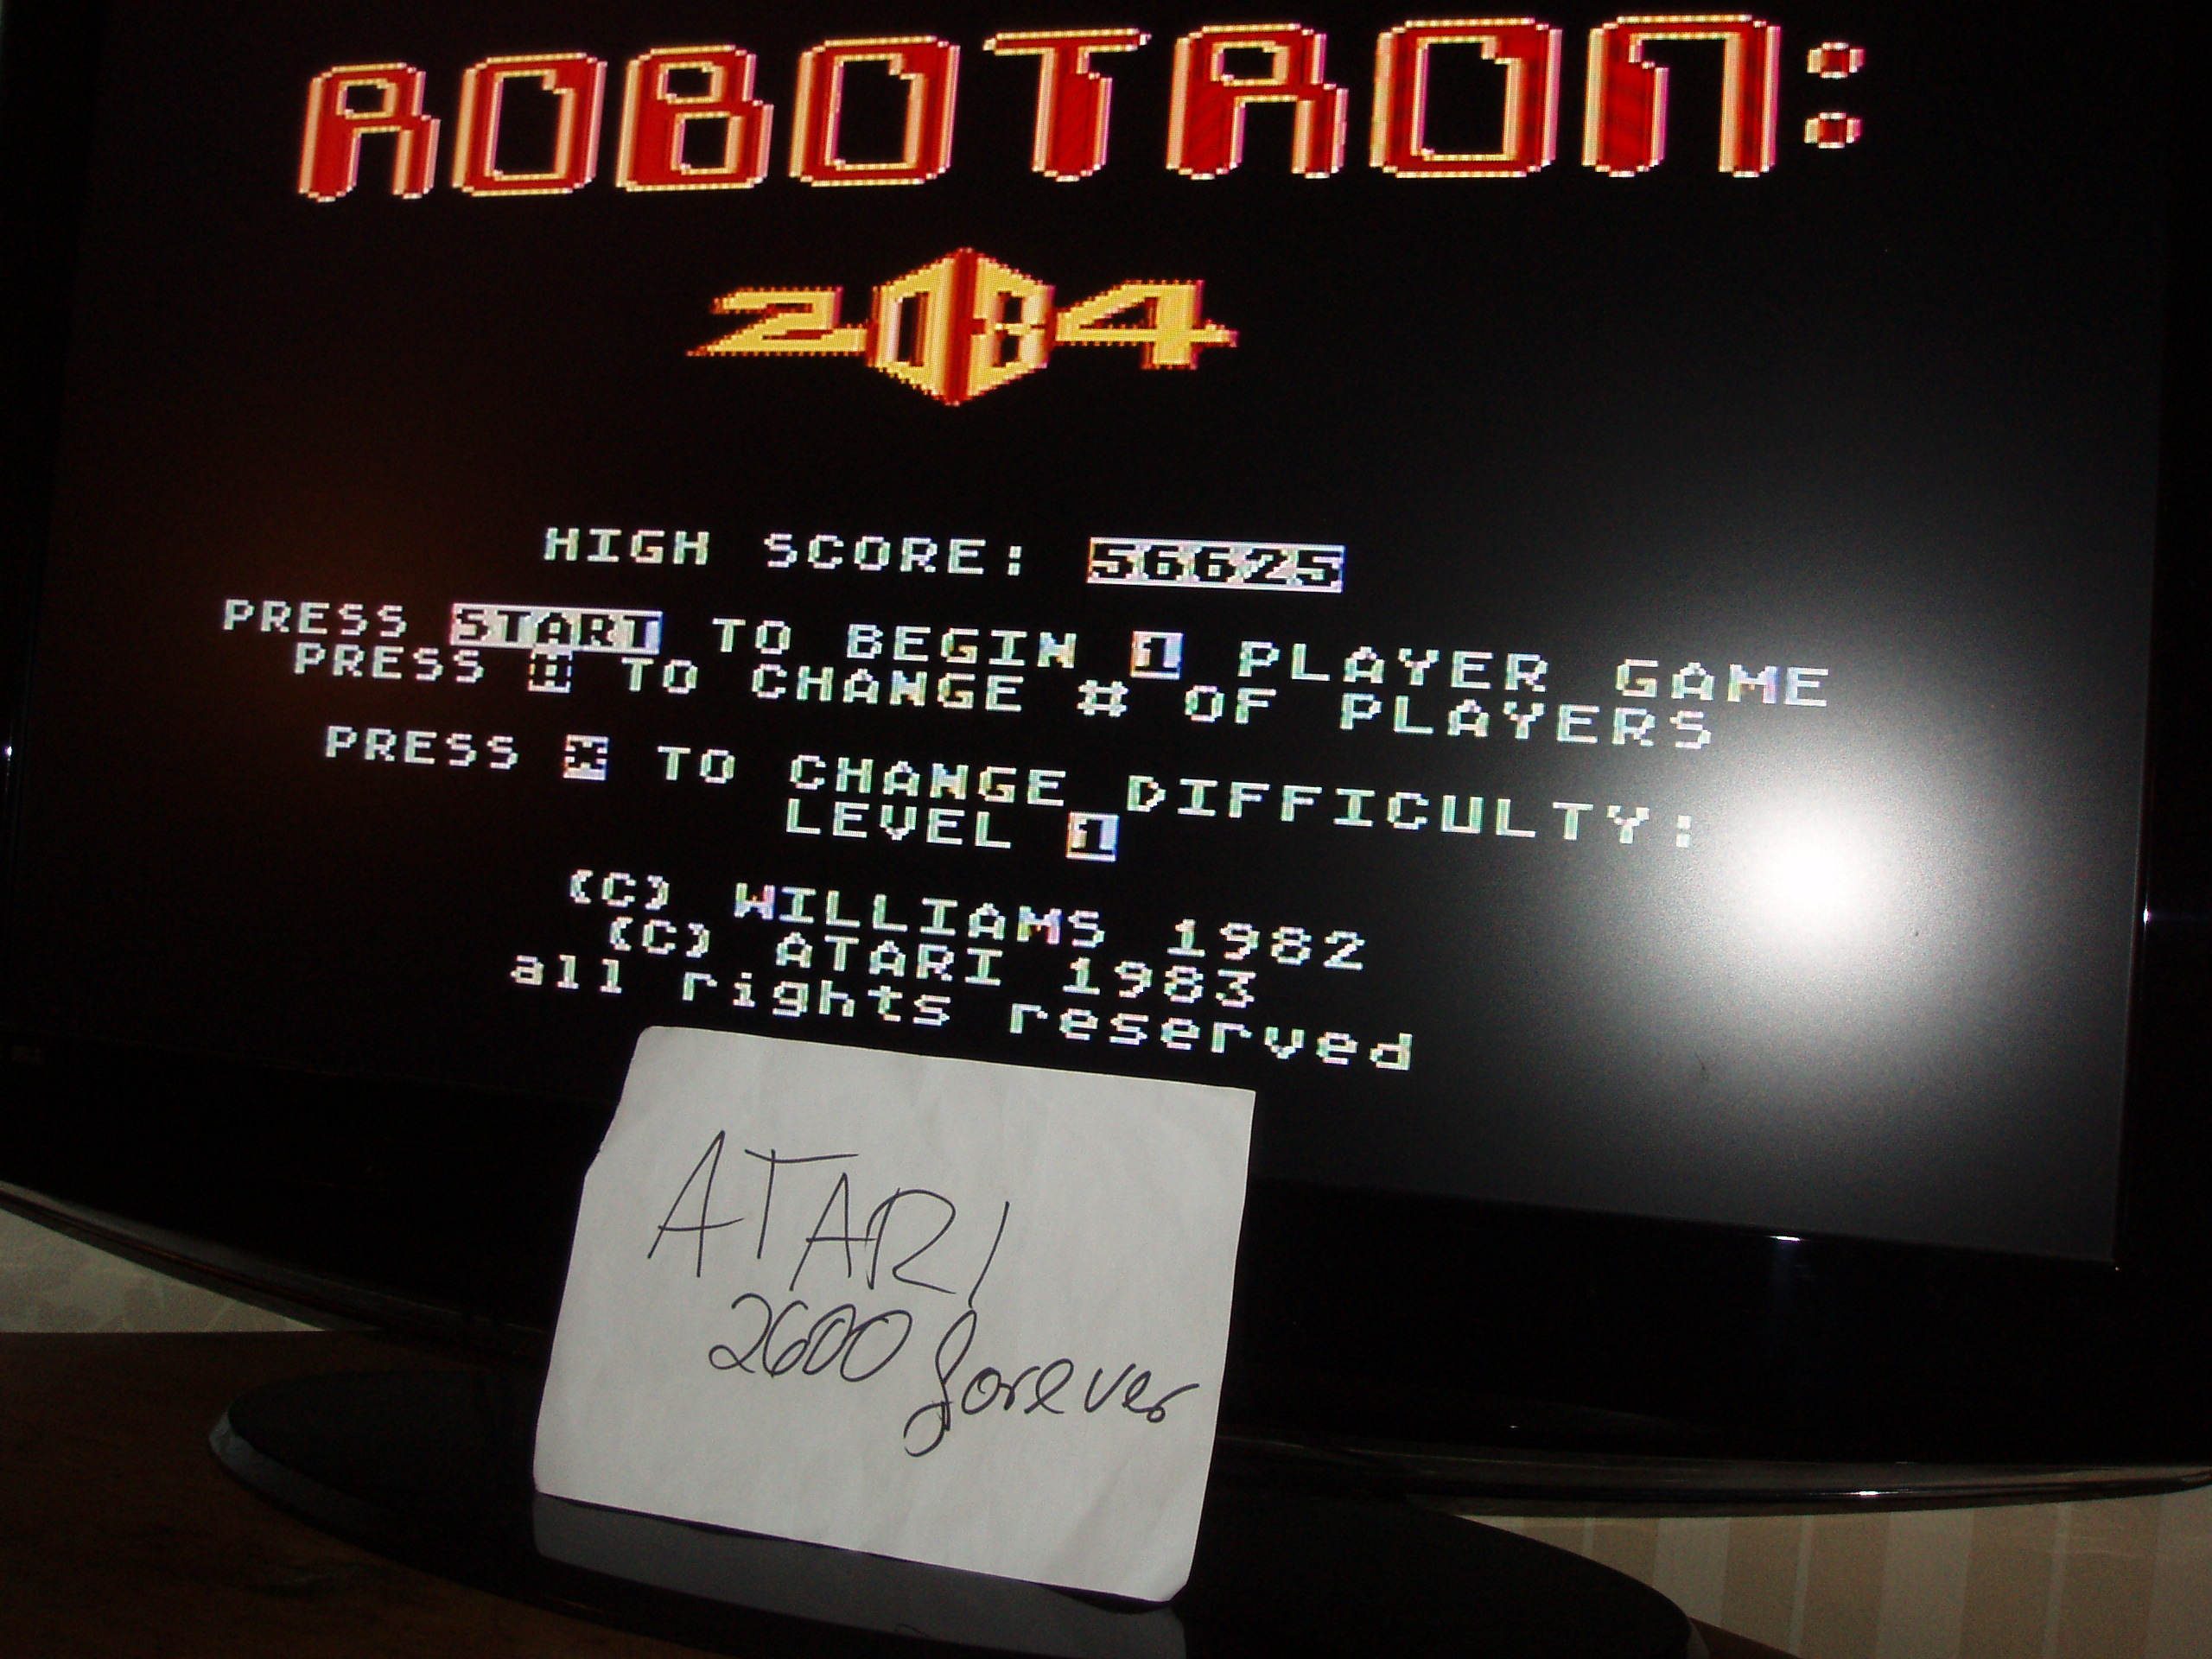 atari2600forever: Robotron 2084: Level 1 (Atari 5200) 56,625 points on 2018-02-01 03:41:26